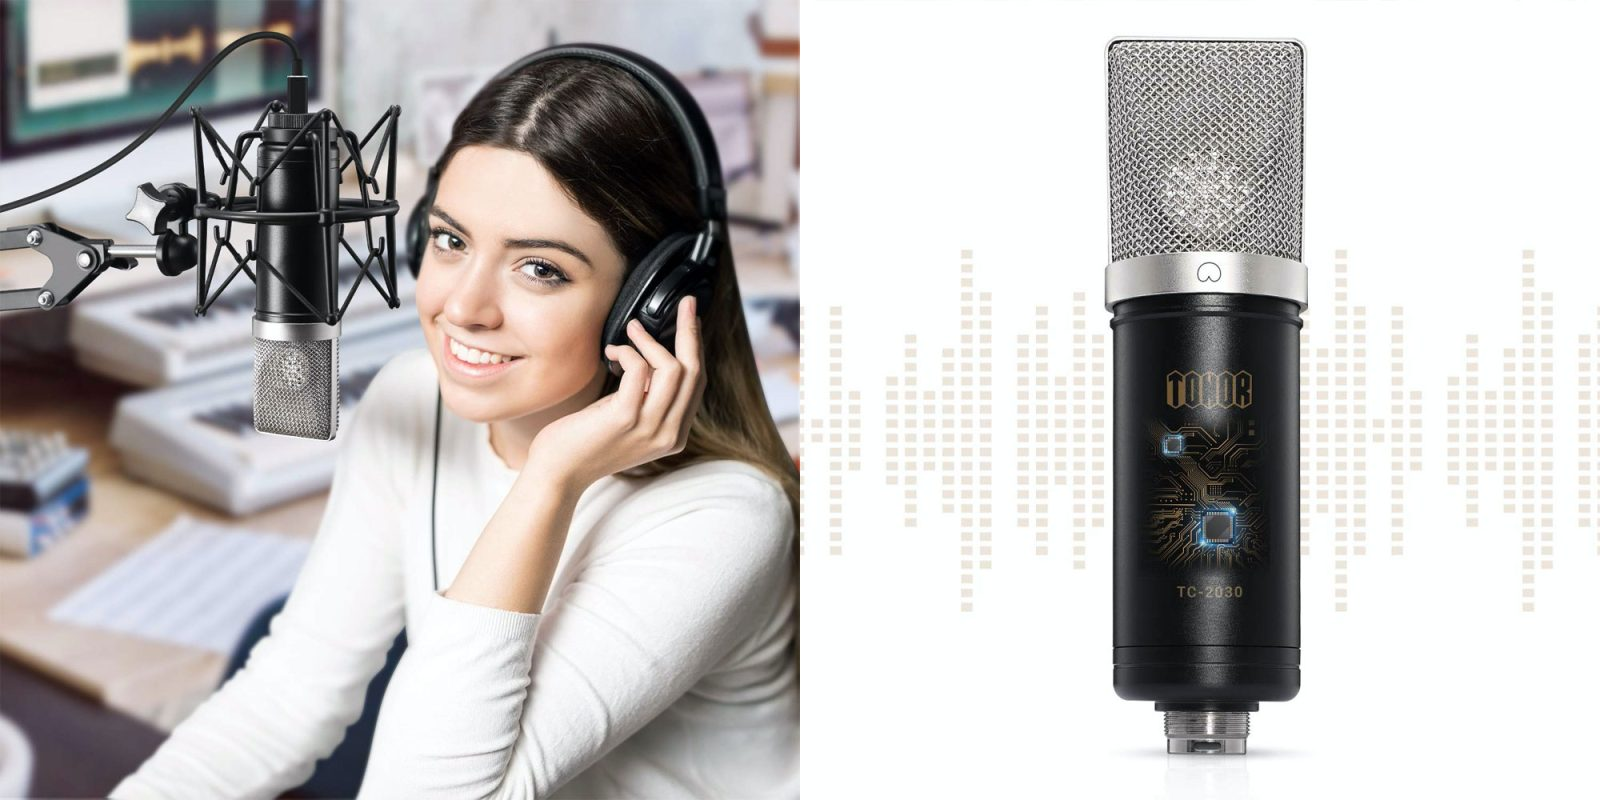 Upgrade your podcasting setup with this USB condenser mic kit: $69 (Reg. $115)